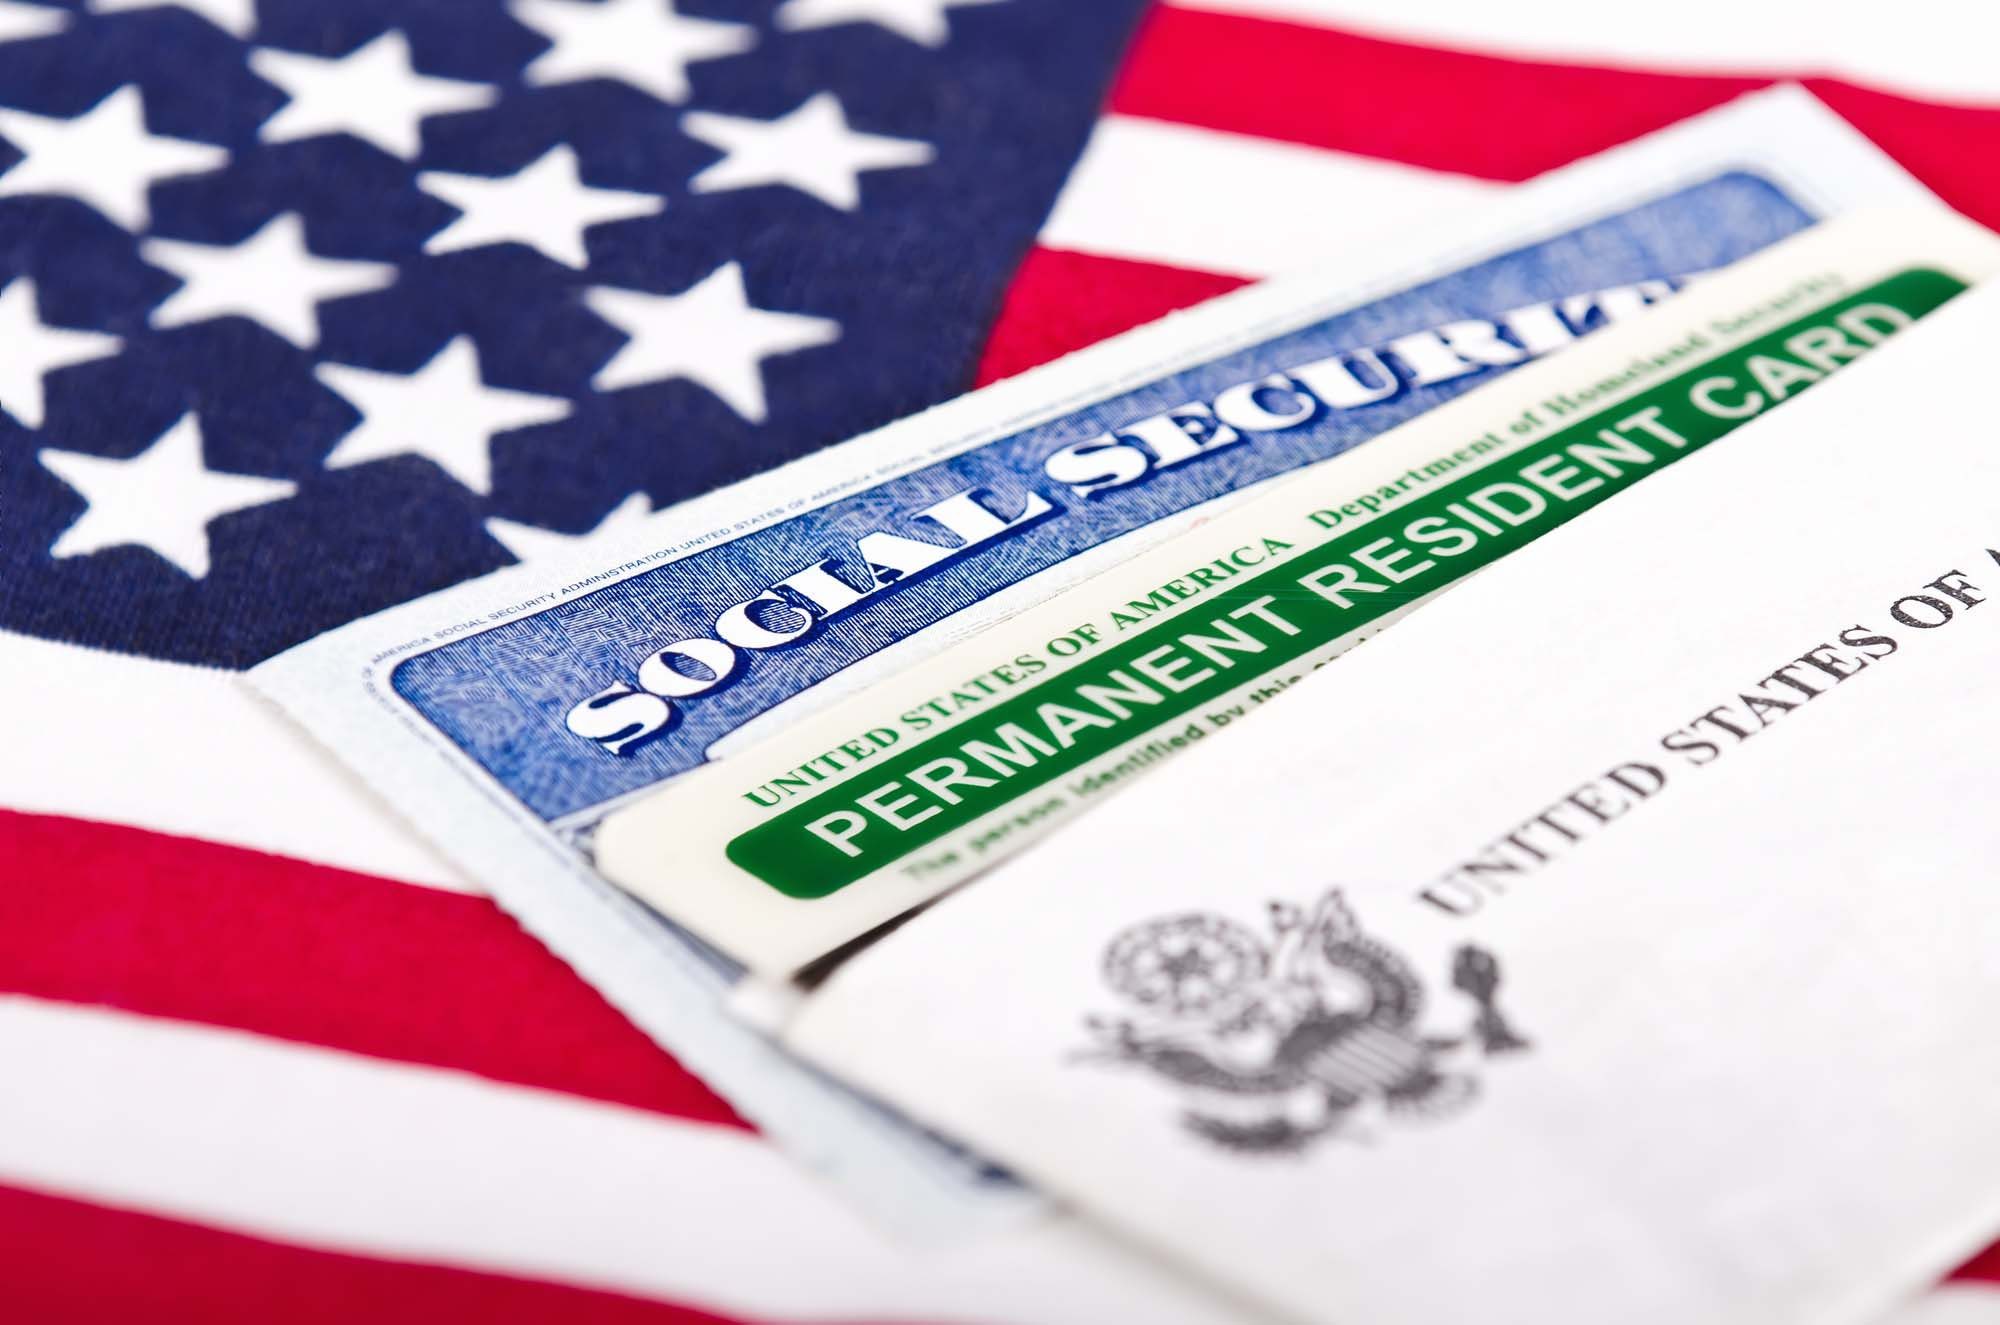 EB-5 Program United States of America social security and green card with US flag on the background. Immigration concept. Closeup with shallow depth of field.